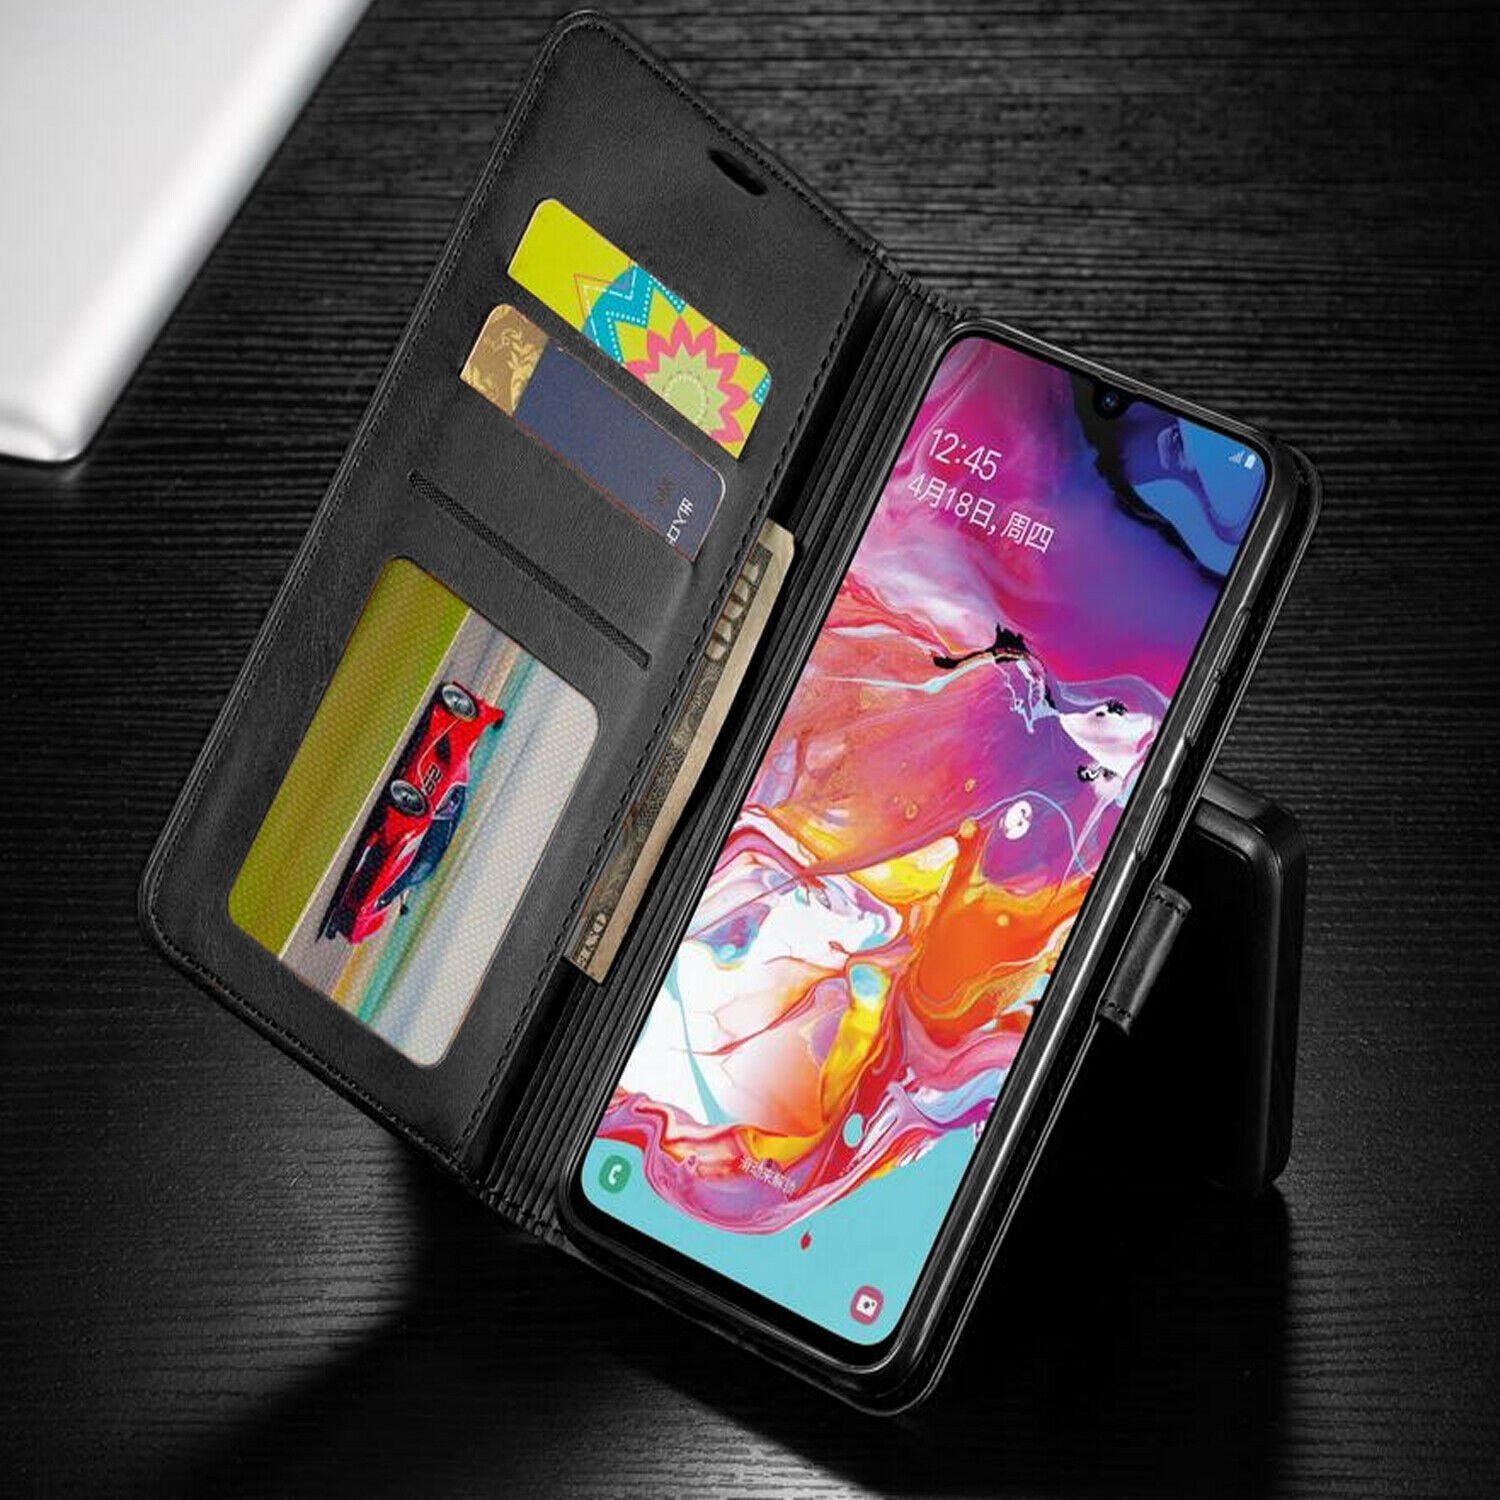 thumbnail 9 - For iPhone 7 / 8 / 7 Plus Case, Premium Wallet Cover + Tempered Glass Protector